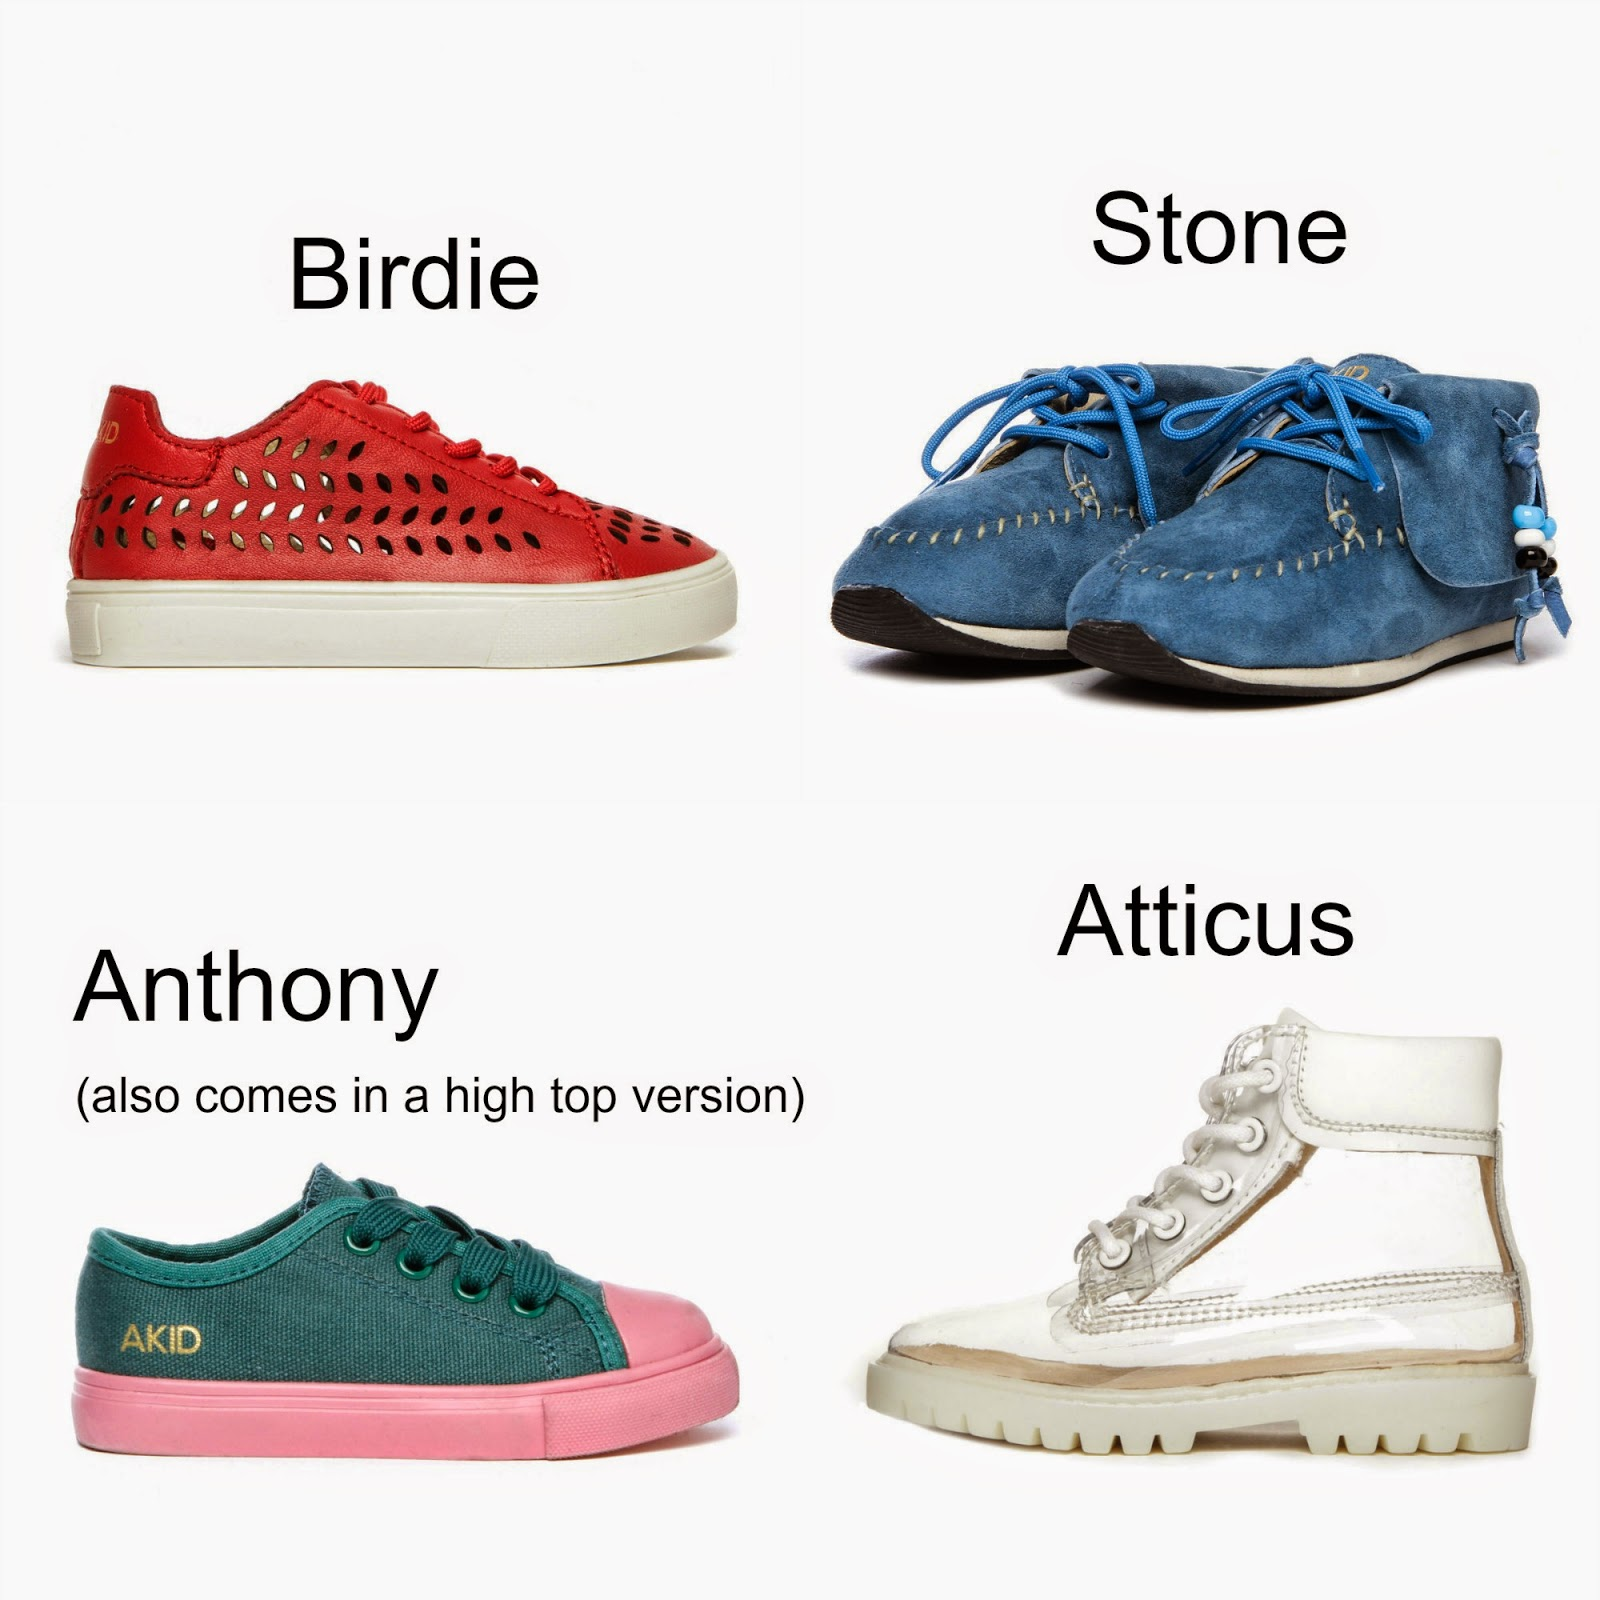 AKID - the kids shoes that get an A+ for fashion and function! | AKID | kids shoes | cool shoes for boys and girls | unisex shoes | trendy brands fashionable shoes for kids | ashleigh dumpster | matt george | nomad | good foot | la couple | designer shoes for kids | mamasVIB | brand | new launch | new collection | acid | acid shoes | stussy |